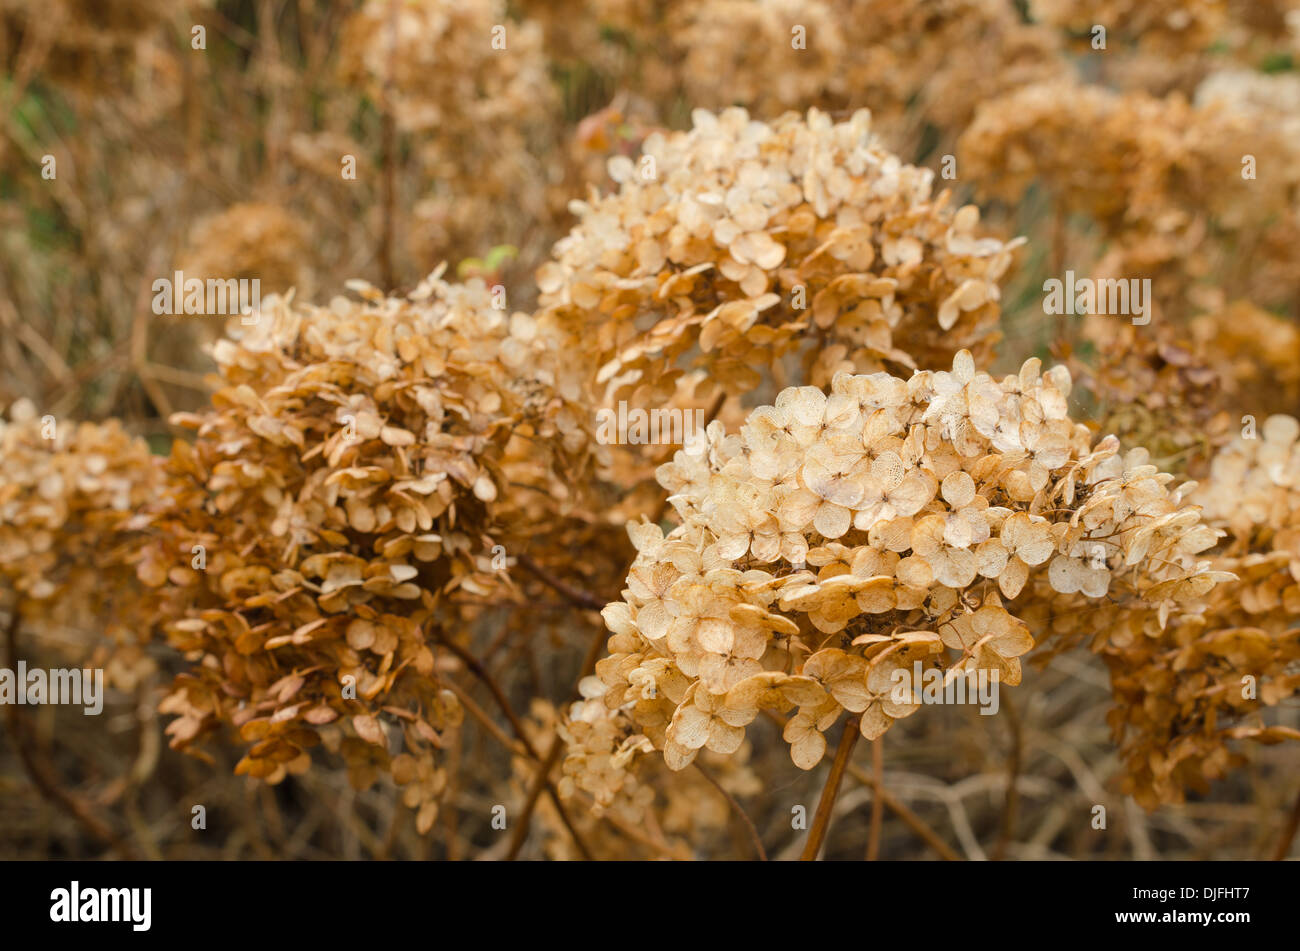 mass of dead Japanese Hydrangea plants the orange flowers heads making a natural dried flower arrangement in the Stock Photo